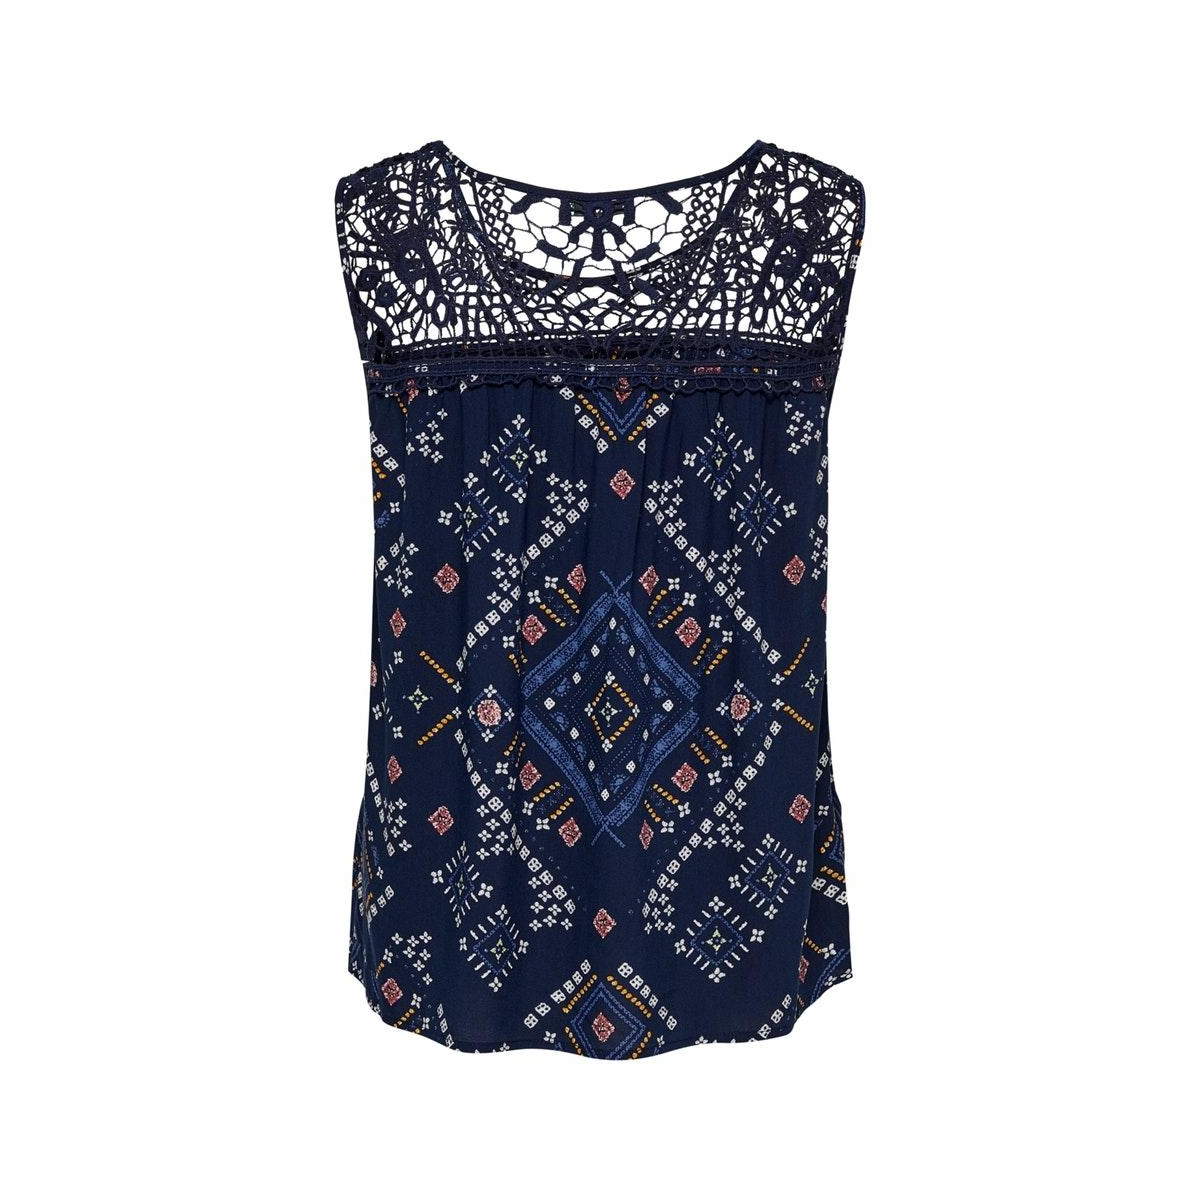 onldee life  s/l top wvn 15201564 only top peacoat/graphic bo